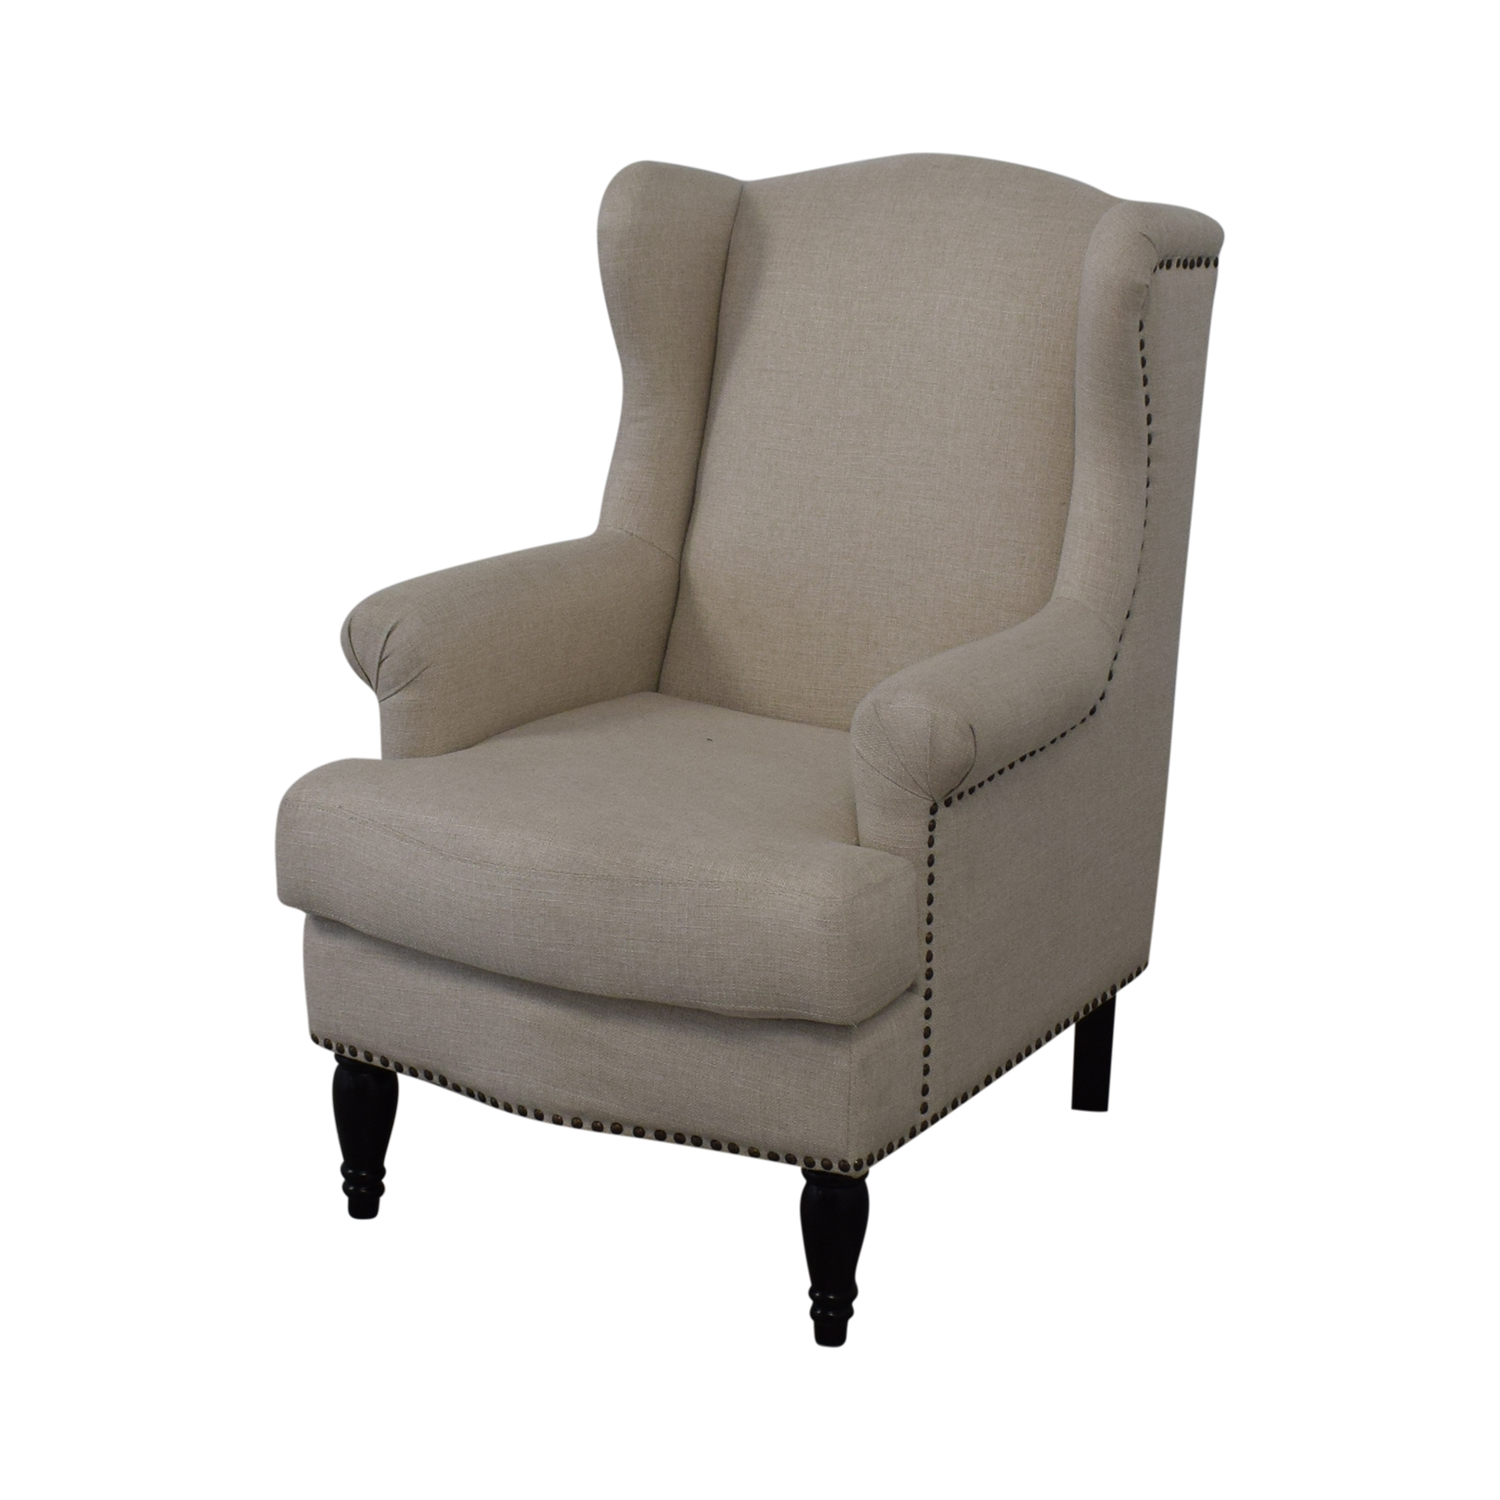 Pottery Barn Pottery Barn Soma Delancey Upholstered Wingback Armchair